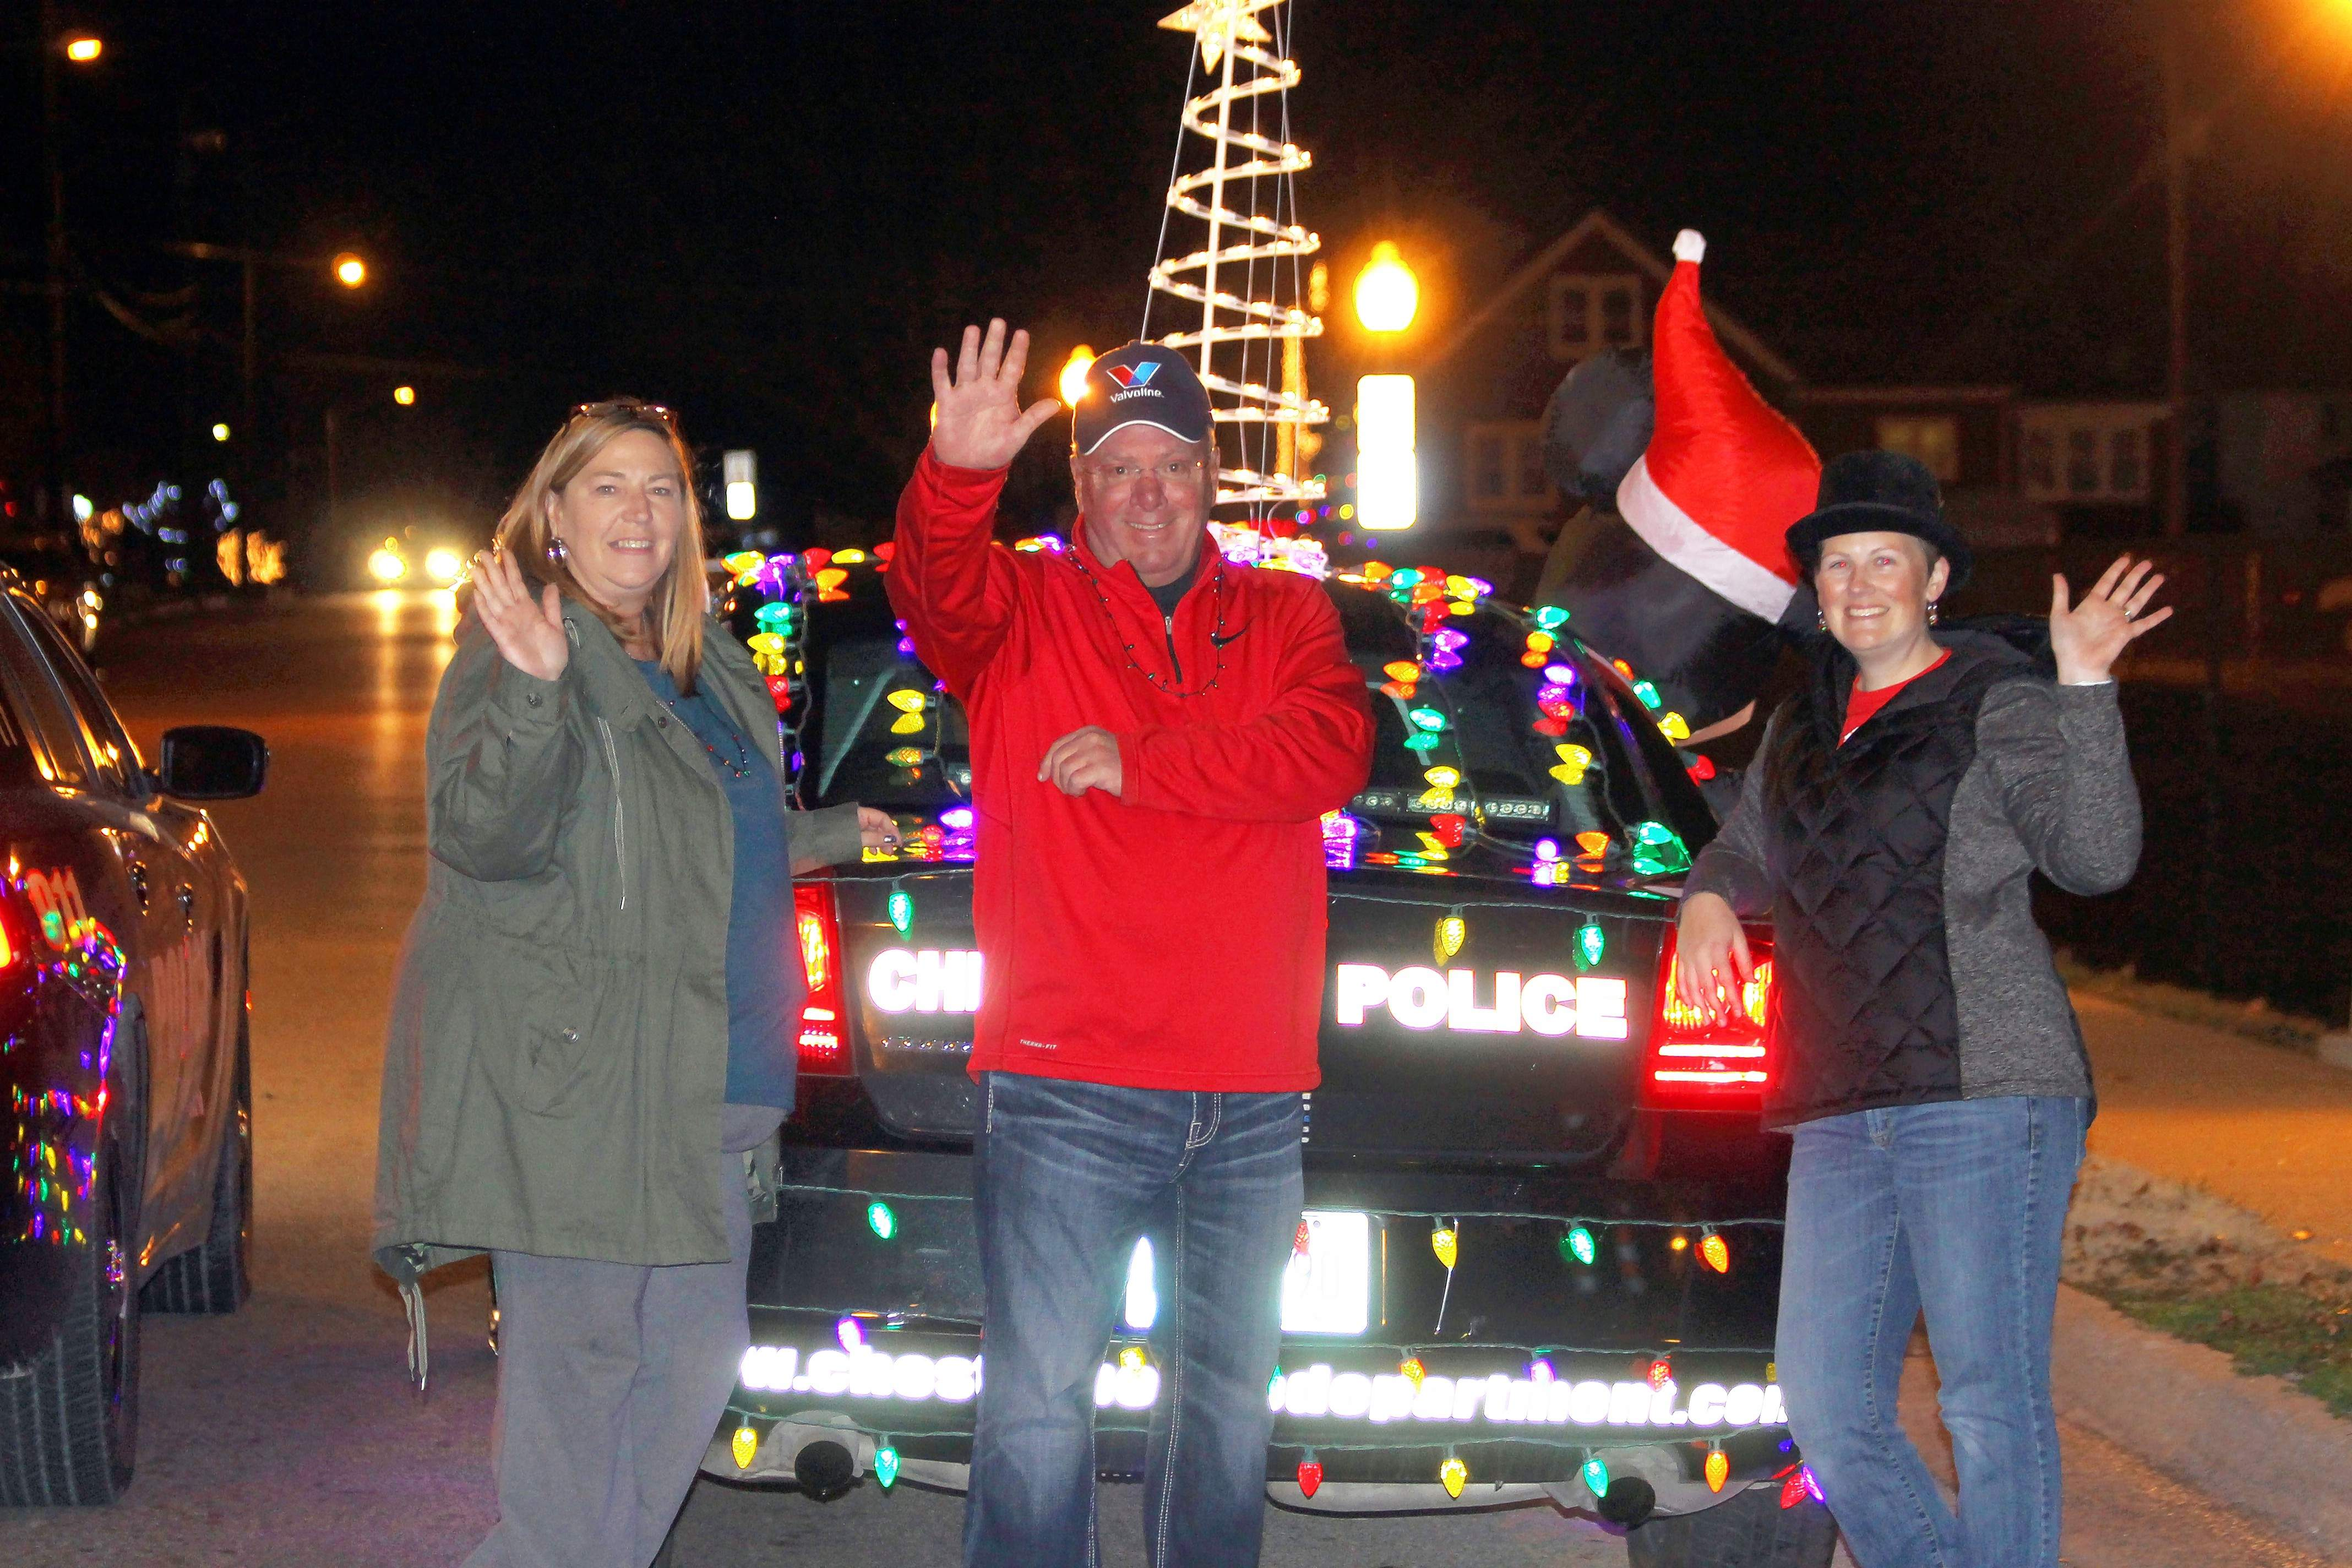 From left, Chester Recreation Director Patti Carter, Mayor Tom Page and Jingle Bell Fun Run/Santa Shuffle Coordinator Brandy Maes.